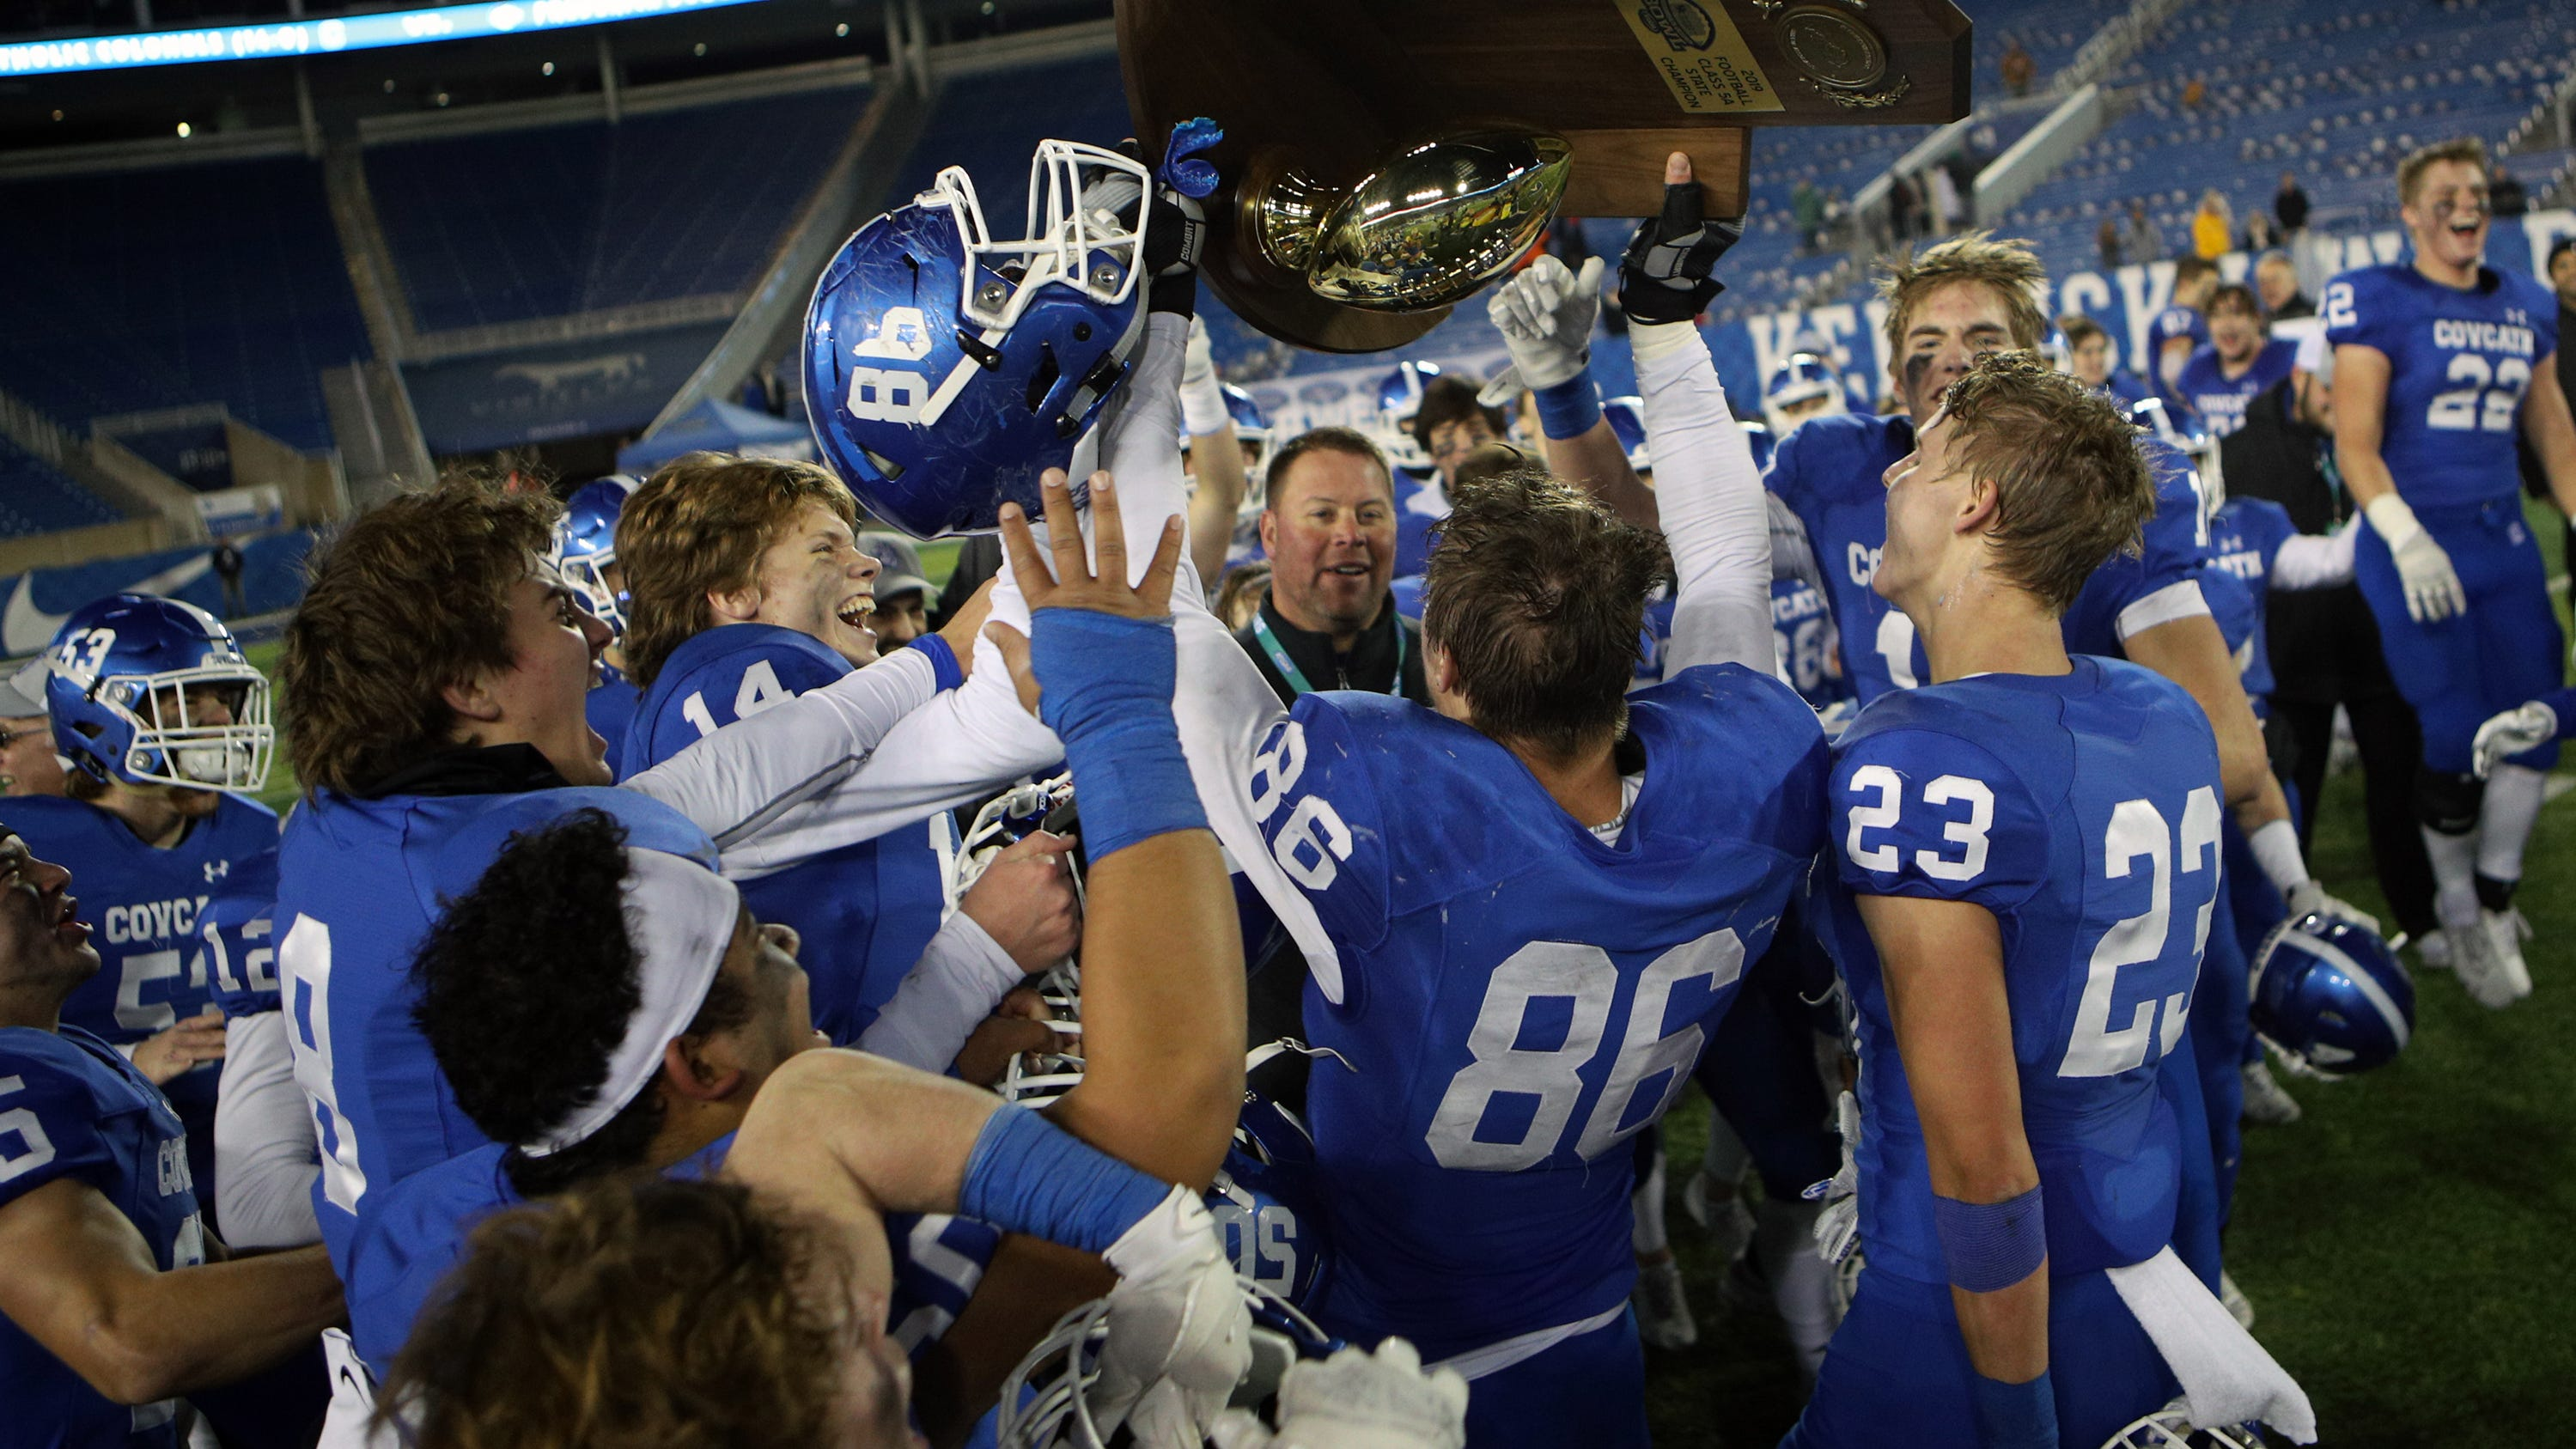 CovCath football wins 2nd state title in 3 years